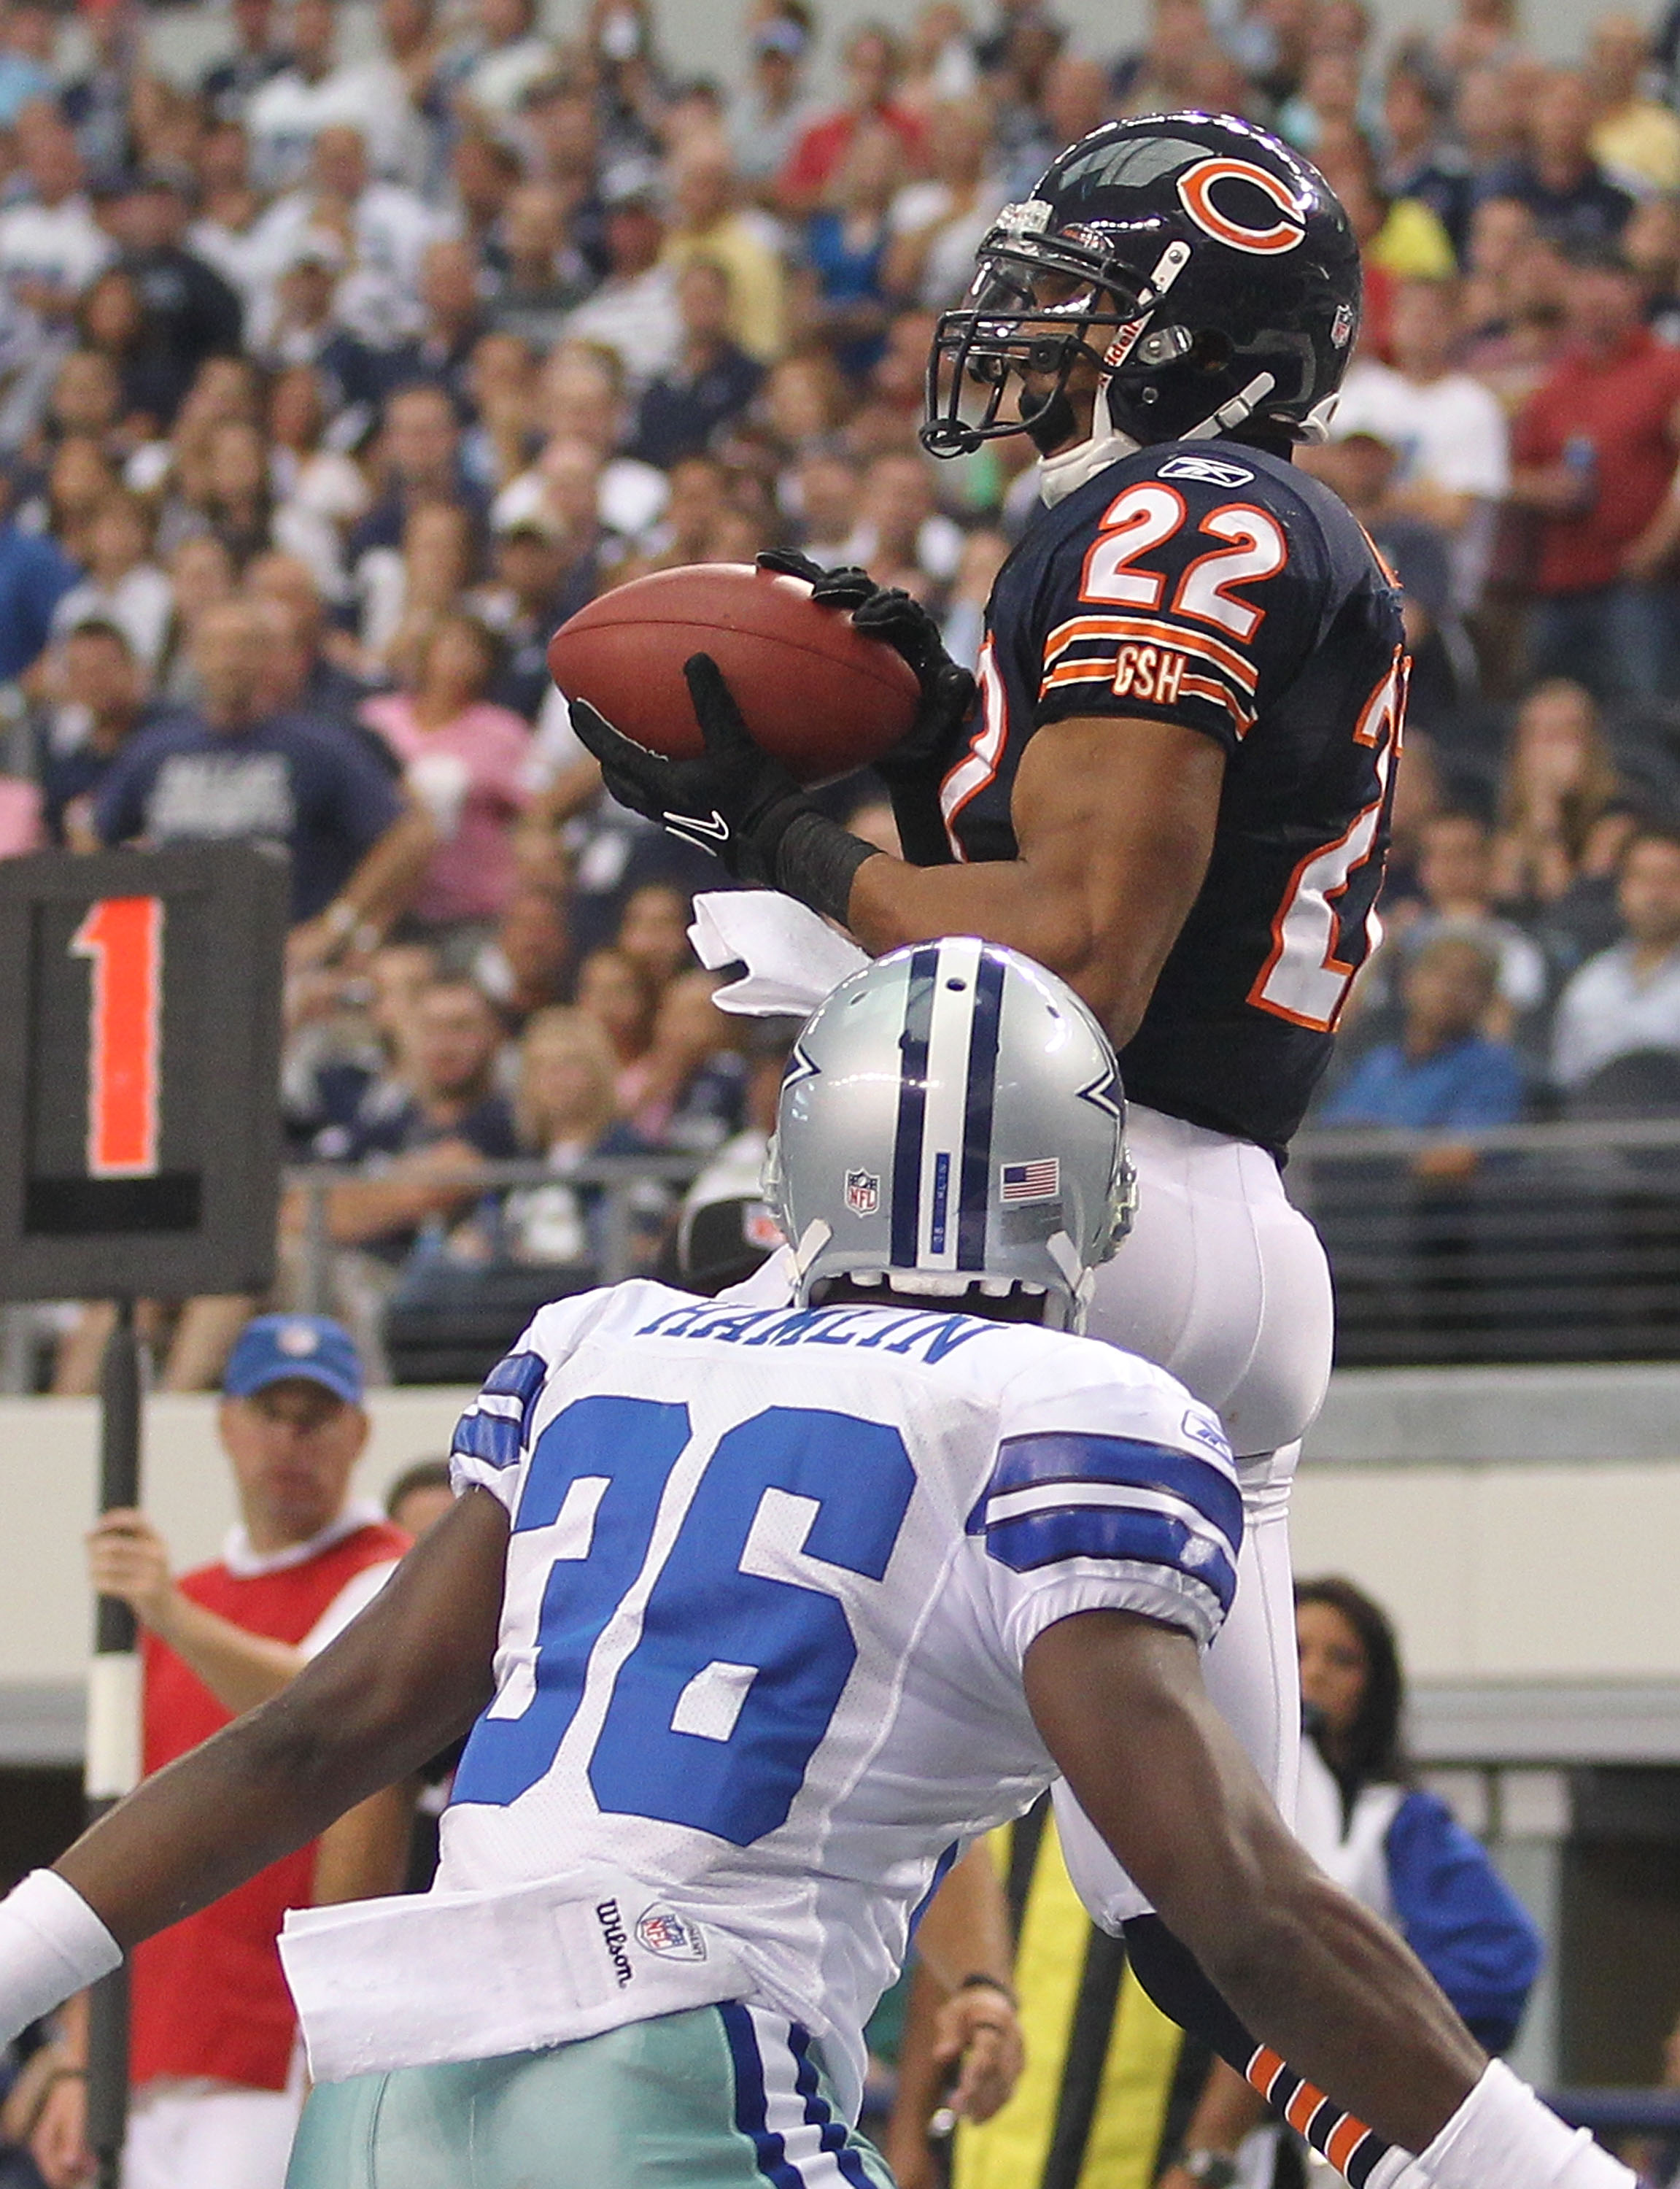 ARLINGTON, TX - SEPTEMBER 19:  Running back Matt Forte #22 of the Chicago Bears makes a touchdown pass reception in front of Michael Hamlin #36 of the Dallas Cowboys in the fourth quarter at Cowboys Stadium on September 19, 2010 in Arlington, Texas.  (Pho